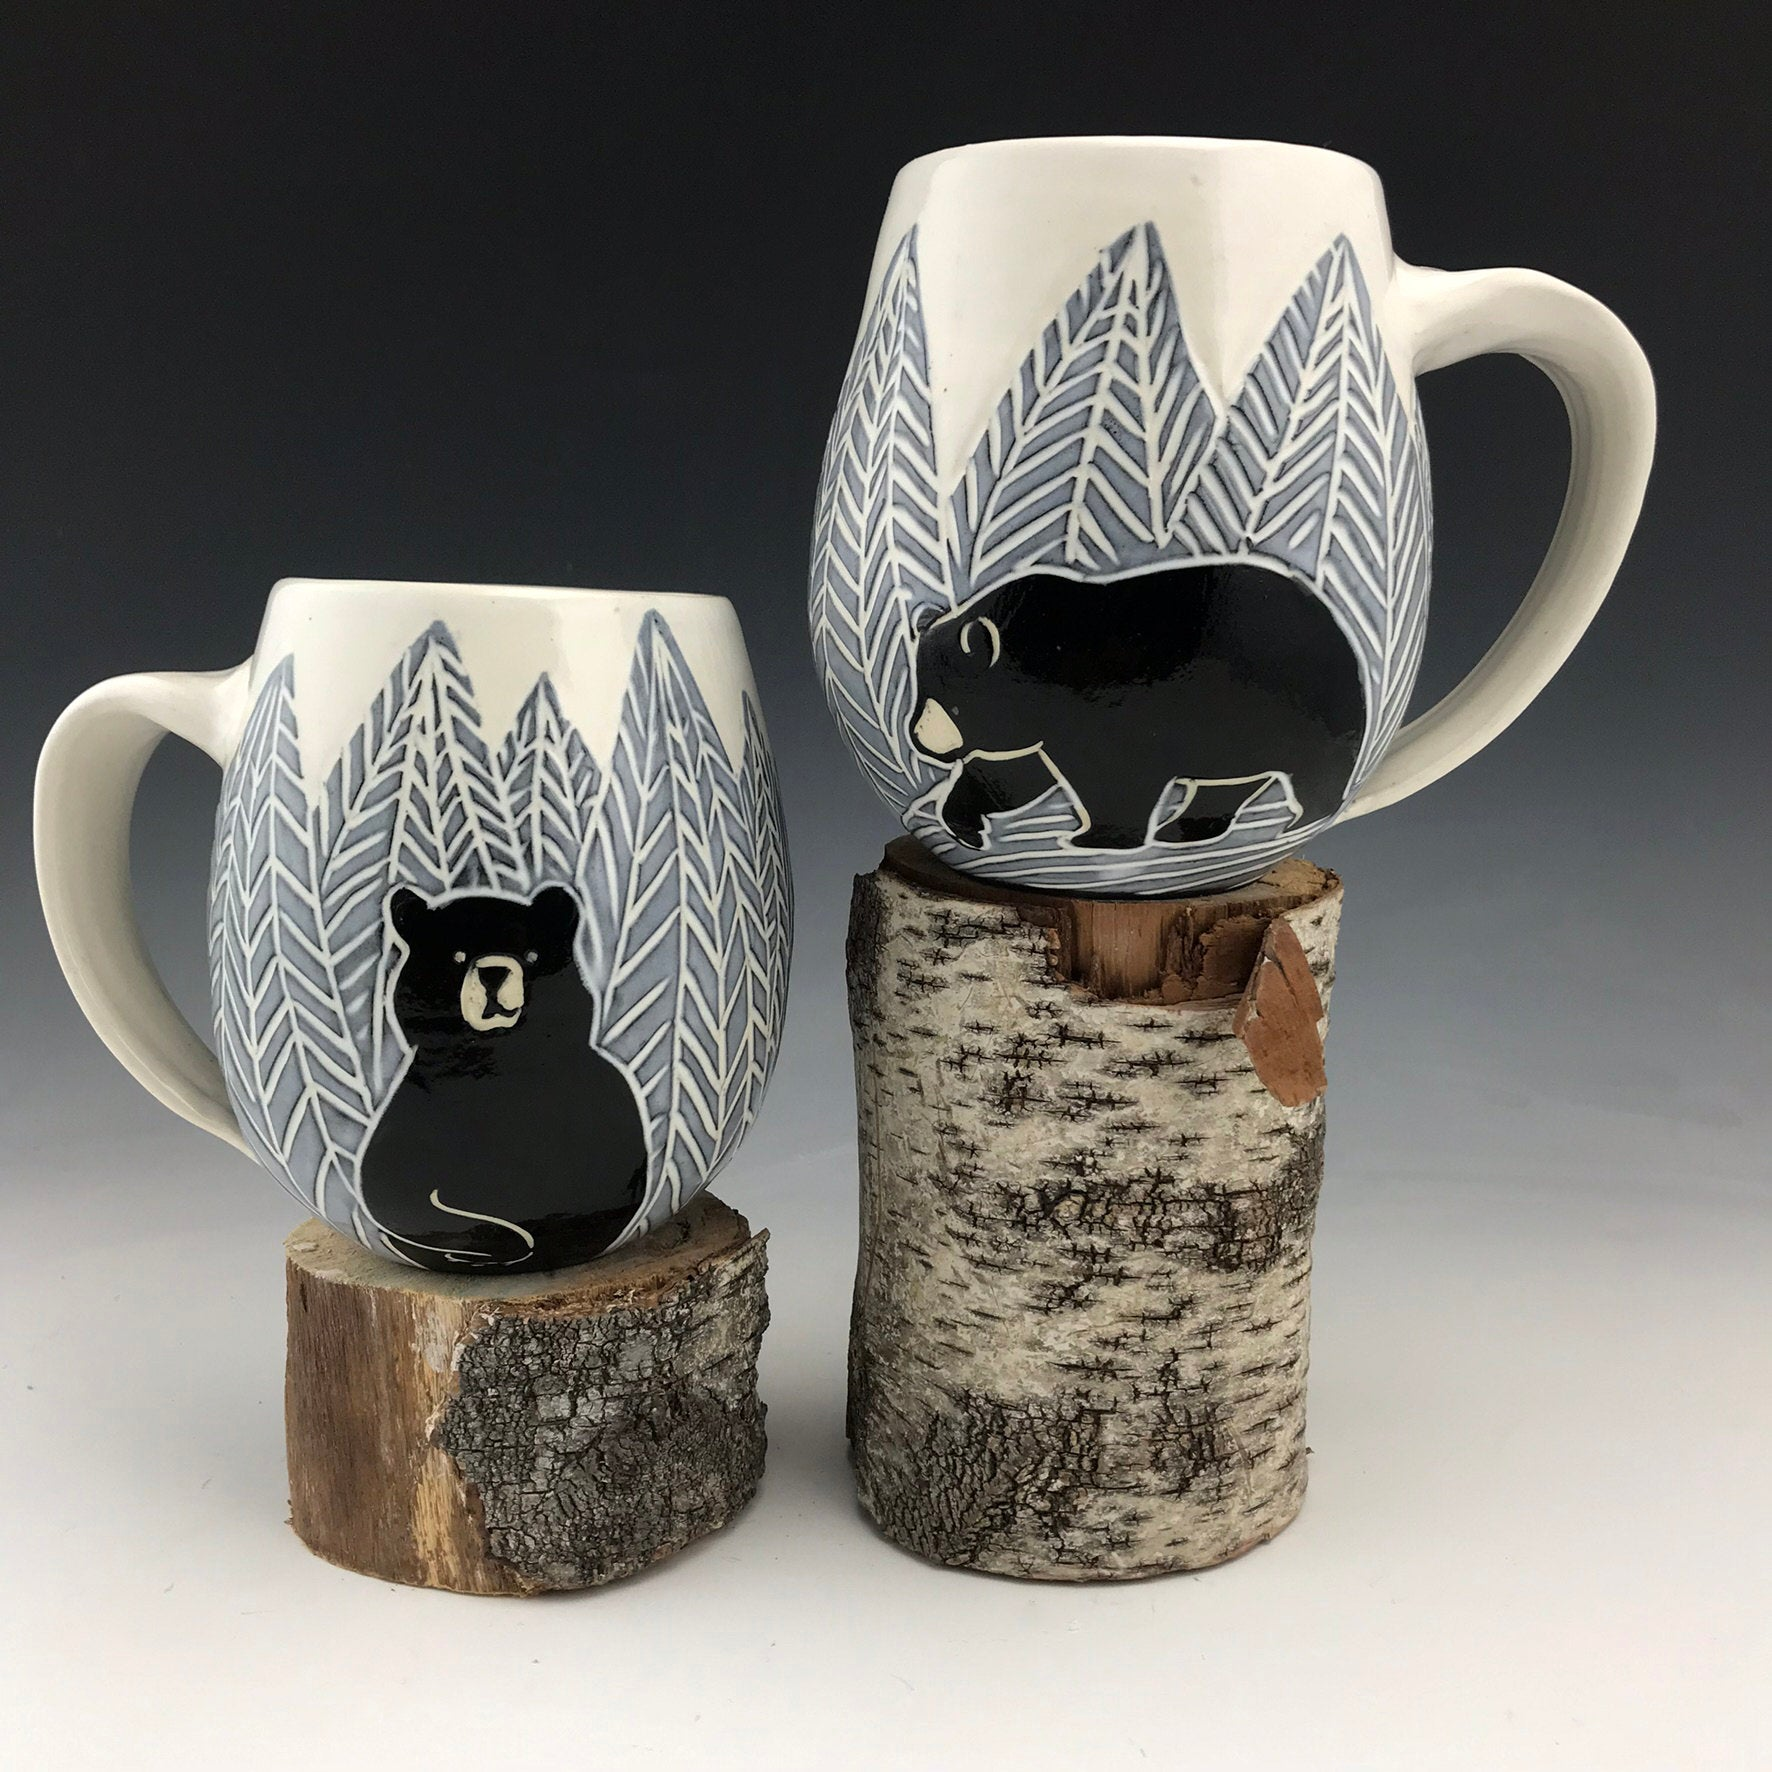 Handmade Sgraffito Bear Pottery Mug in Black and White Herringbone Trees